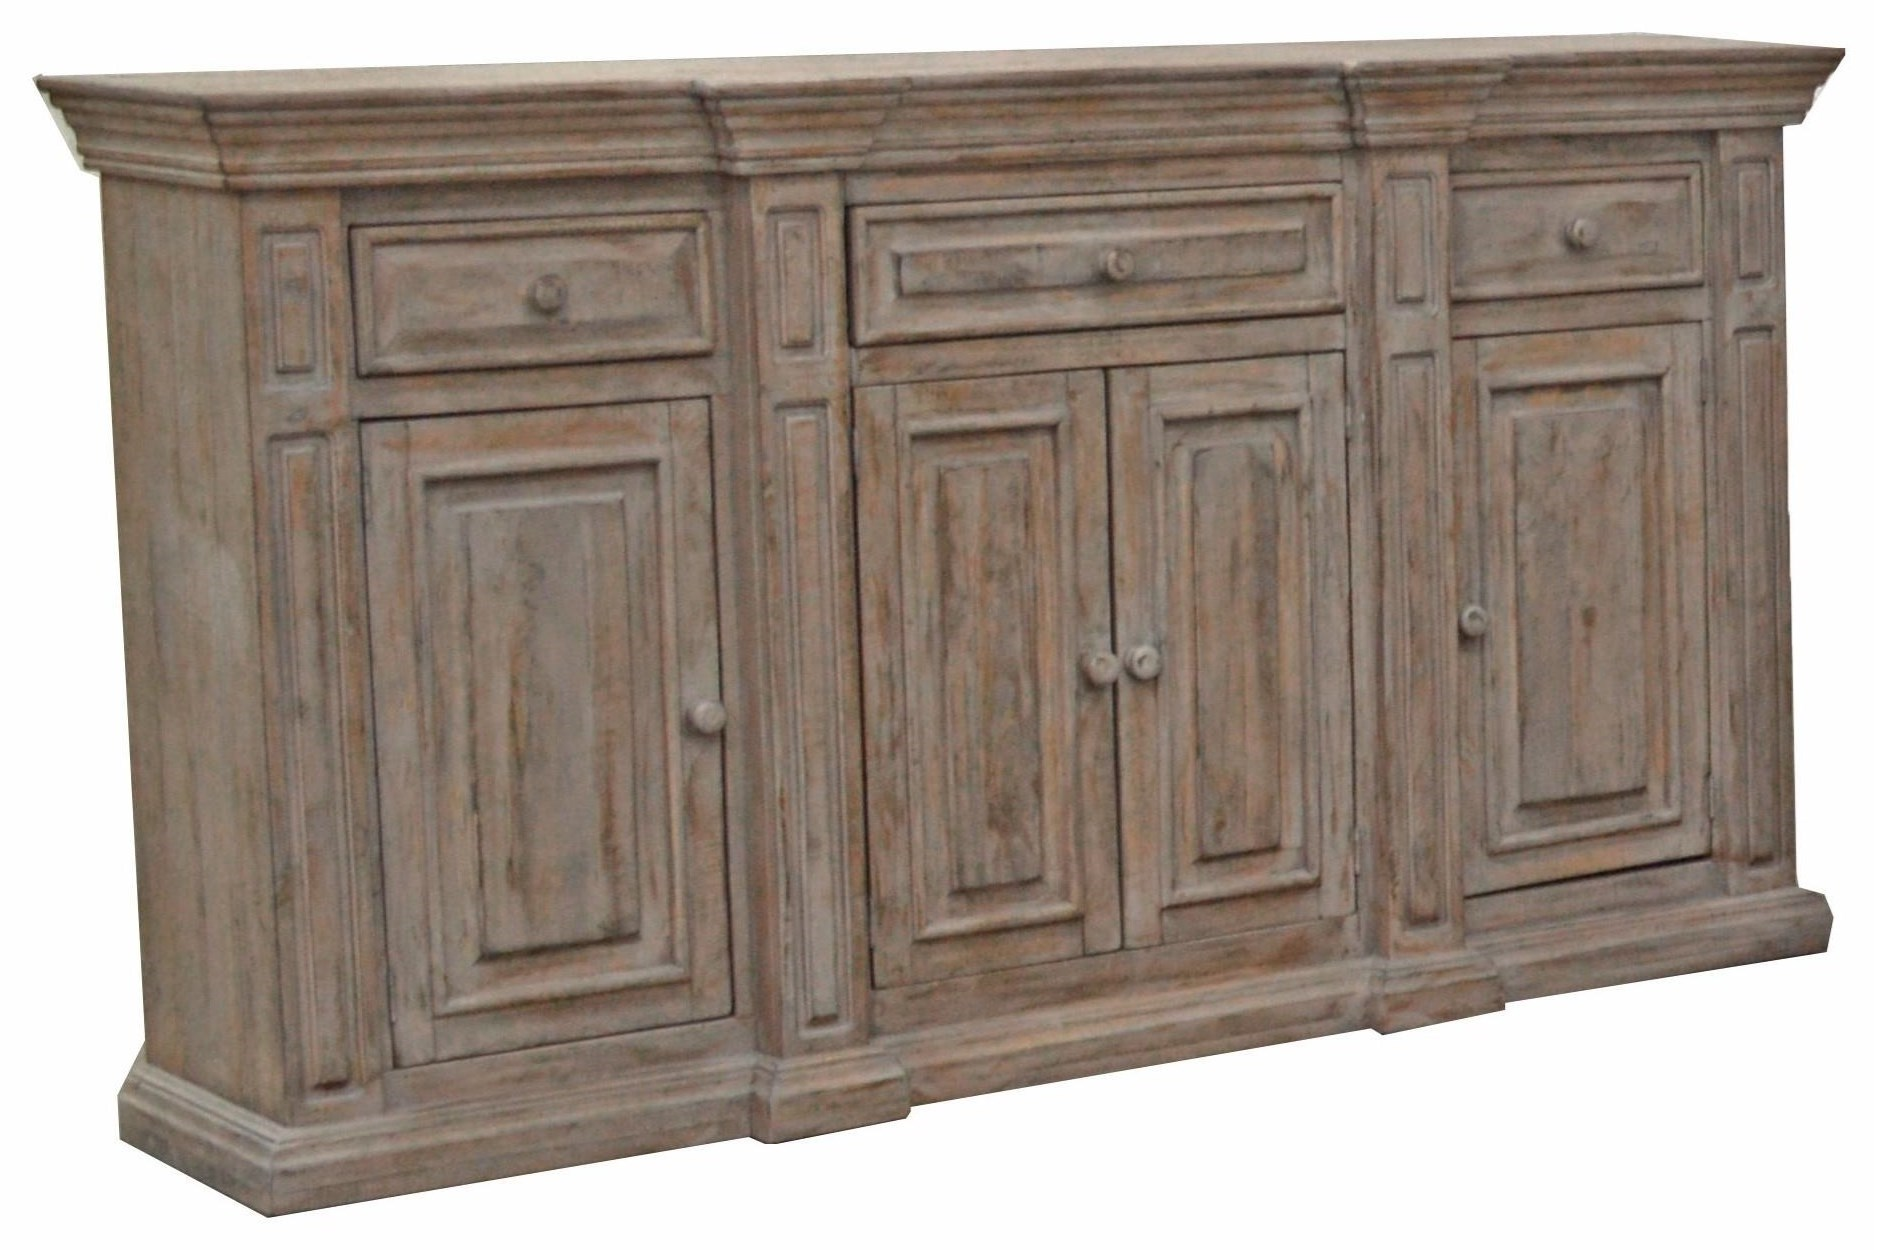 Dining Room Furniture Buffet Wimberly Dining Room Buffet By Puebla At Household Furniture